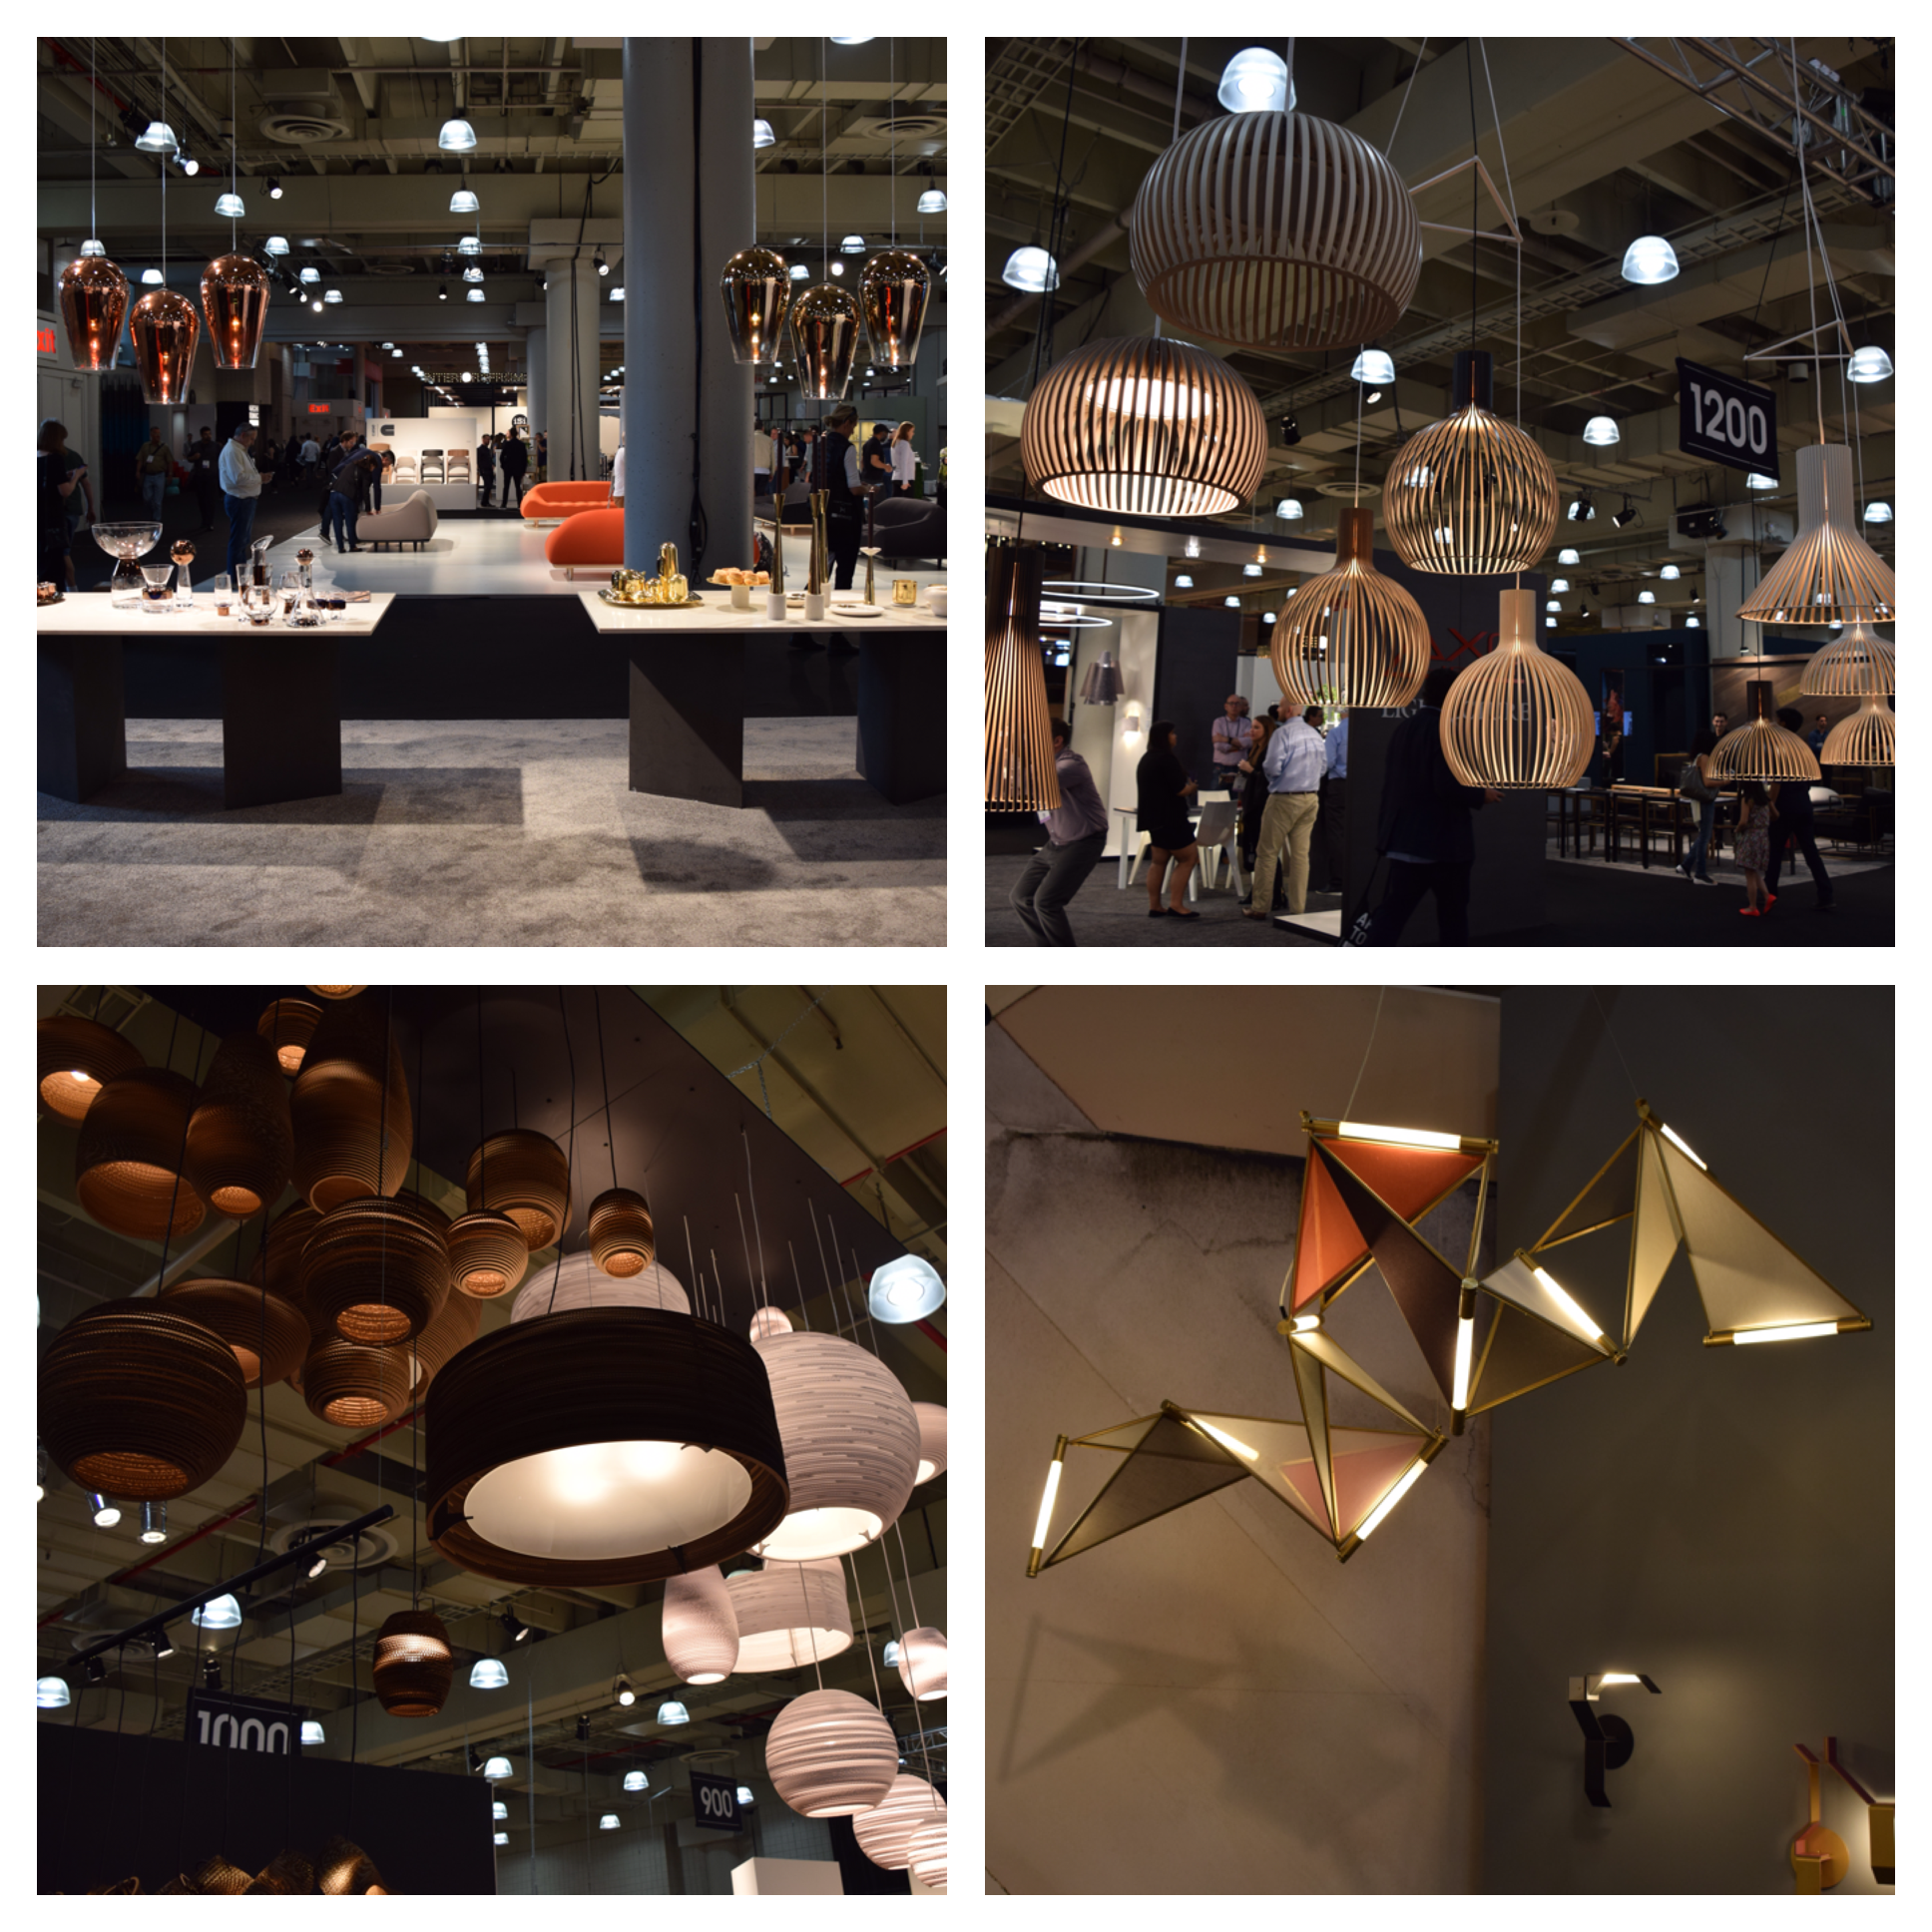 Top Left:  Fade Pendant in chrome, gold or copper by  Tom Dixon    Top Right:  These wooden pendants by  Seppo Koho are hand crafted from Finnish birch.   Bottom Left:  Hand crafted pendant lights made from recycled cardboard by  Graypants, Inc.    Bottom Right:  Incorporating geometric shapes and angles is designer  James Dieter  based in Brooklyn, NY